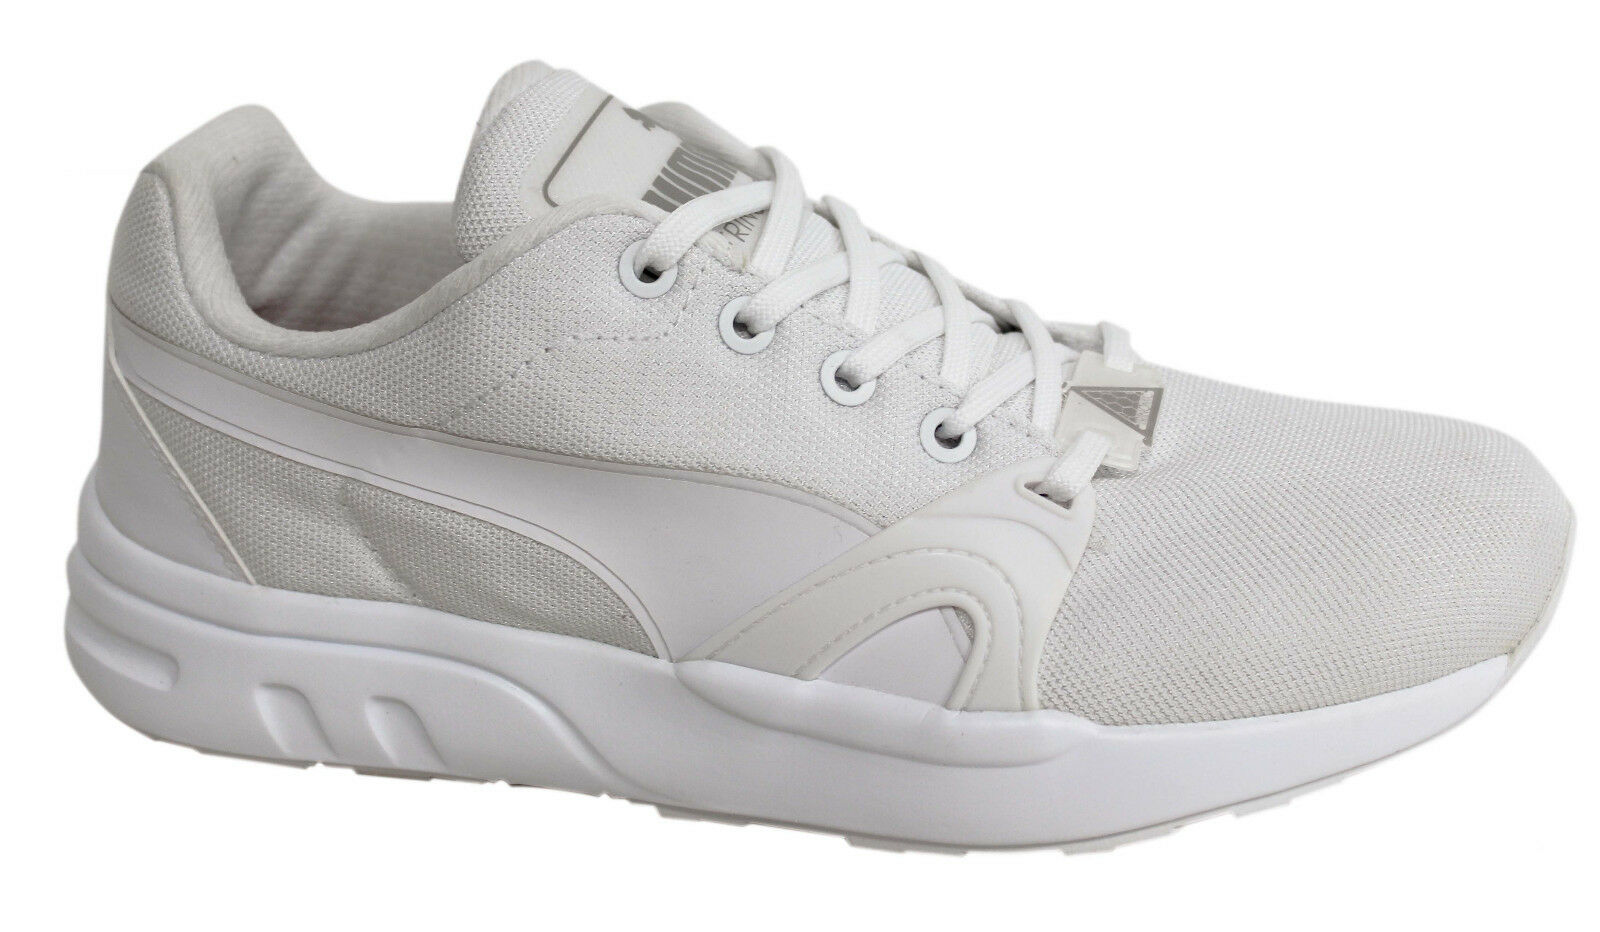 Puma Trinomic XT S Mens Weiß Lace Up Trainers Running schuhe 359135 03 U101